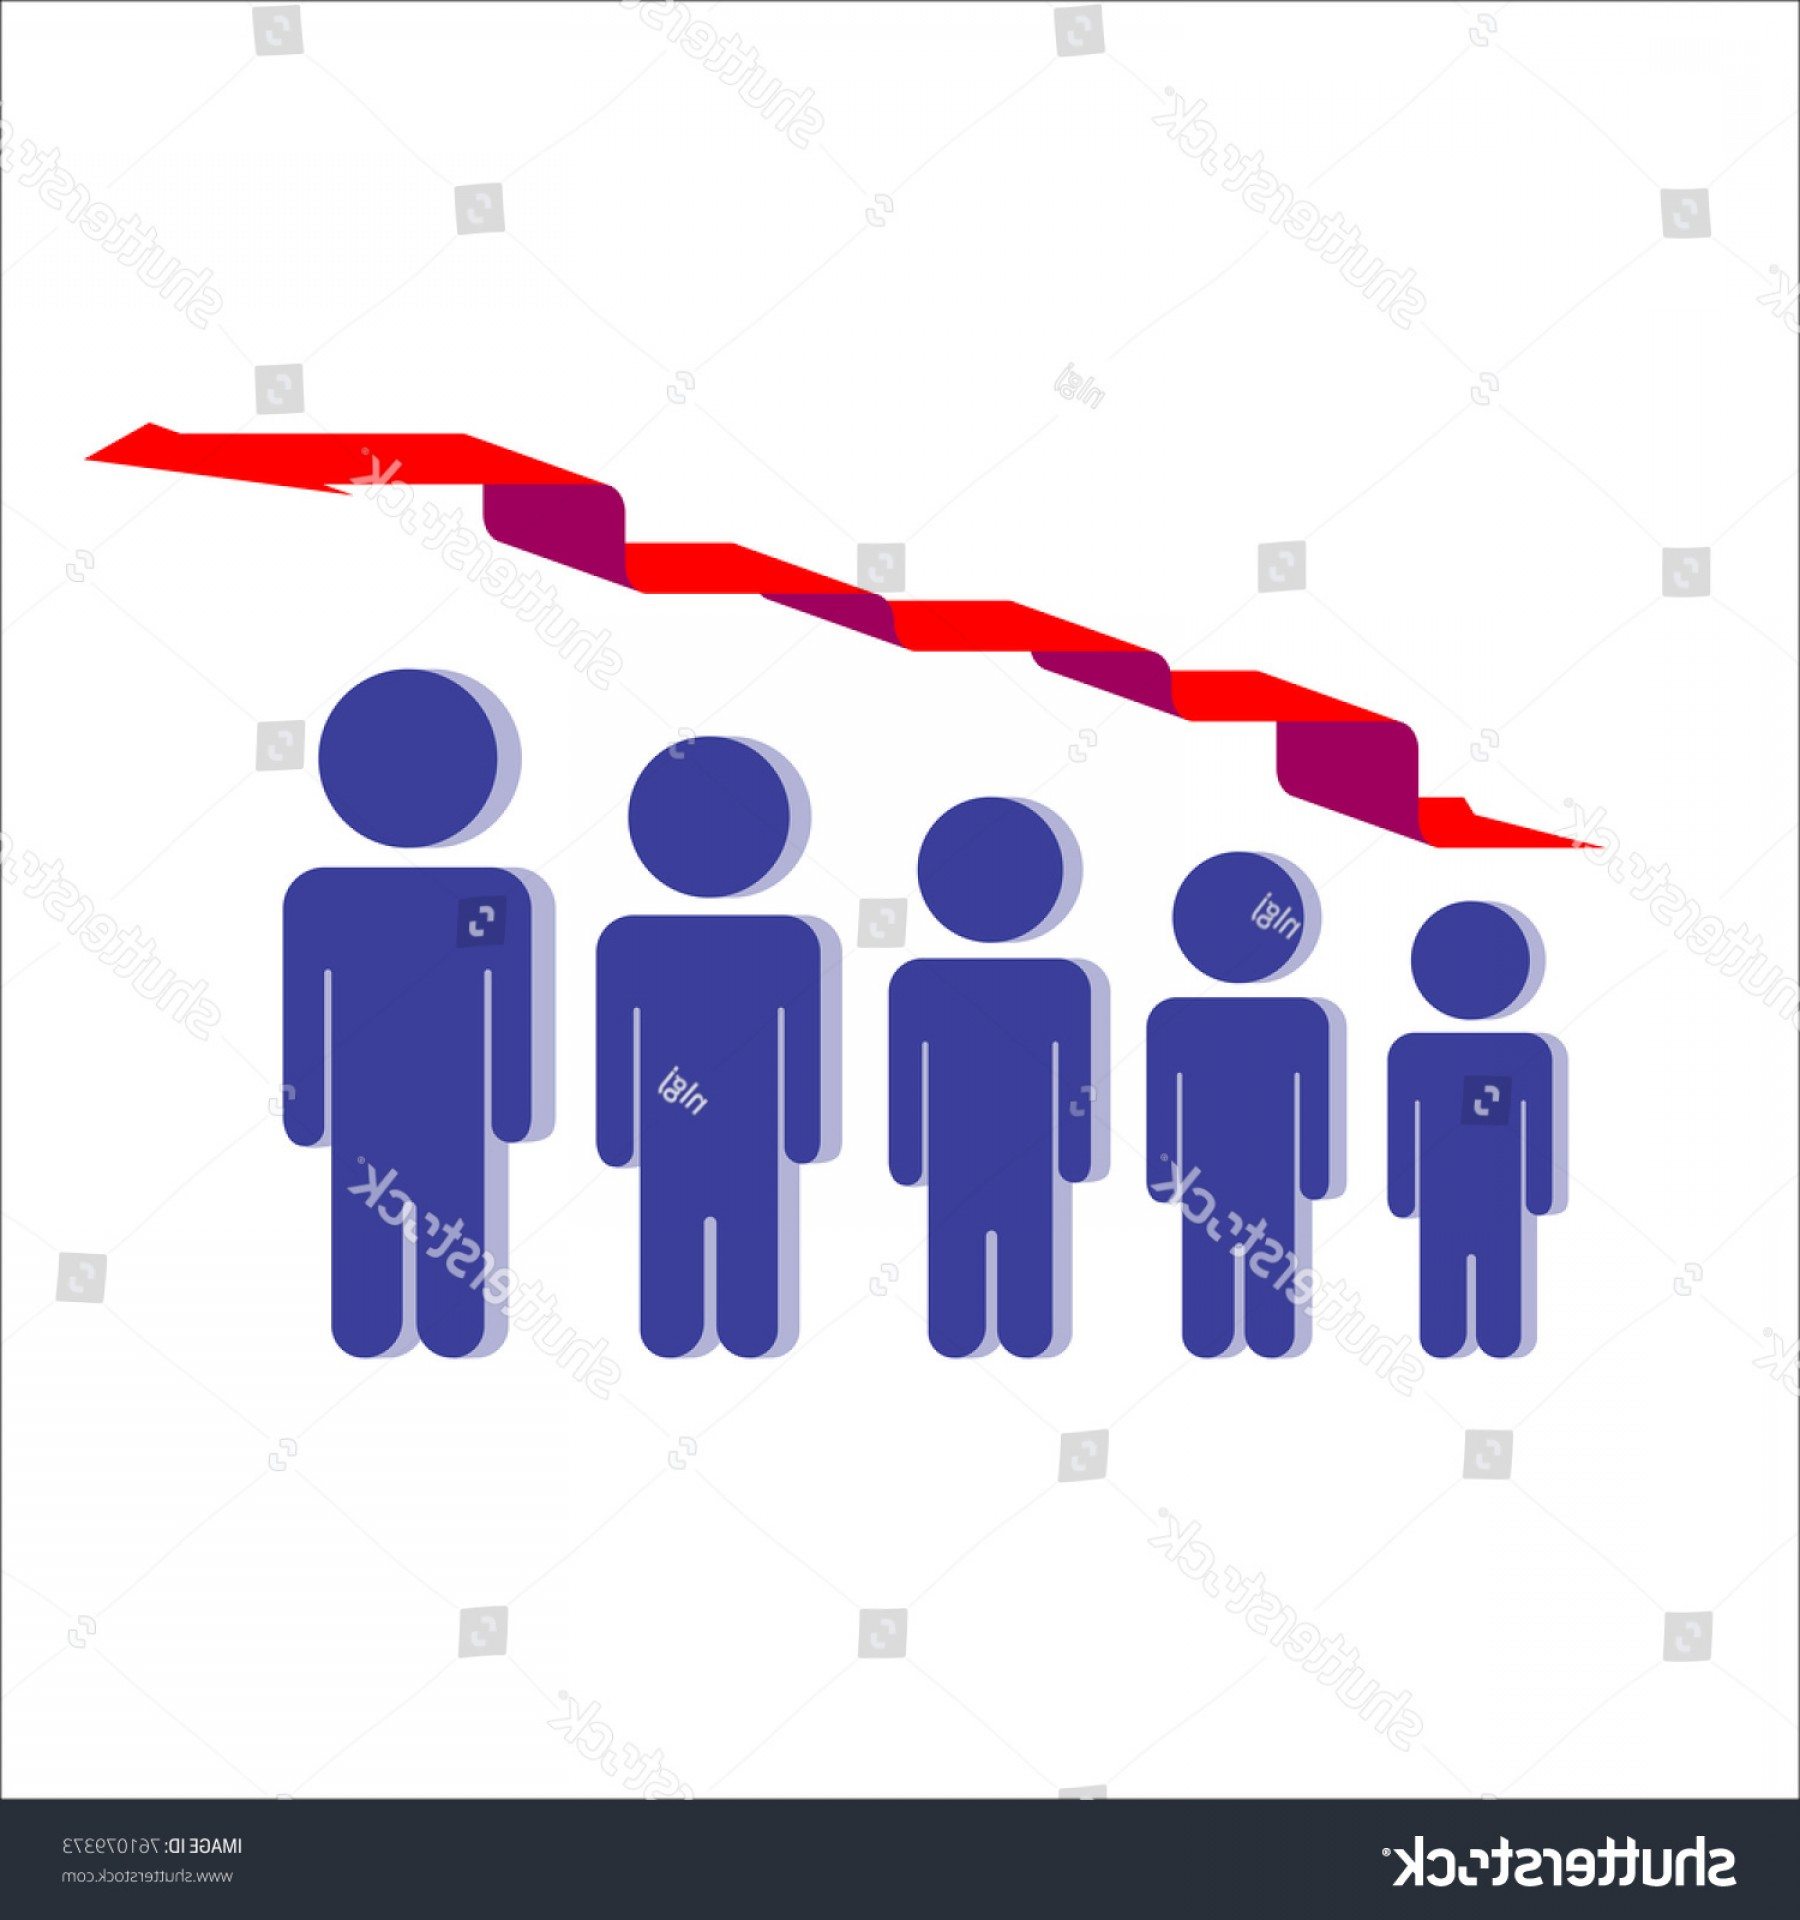 Growth Vector People: People Development Growth Vector Illustration